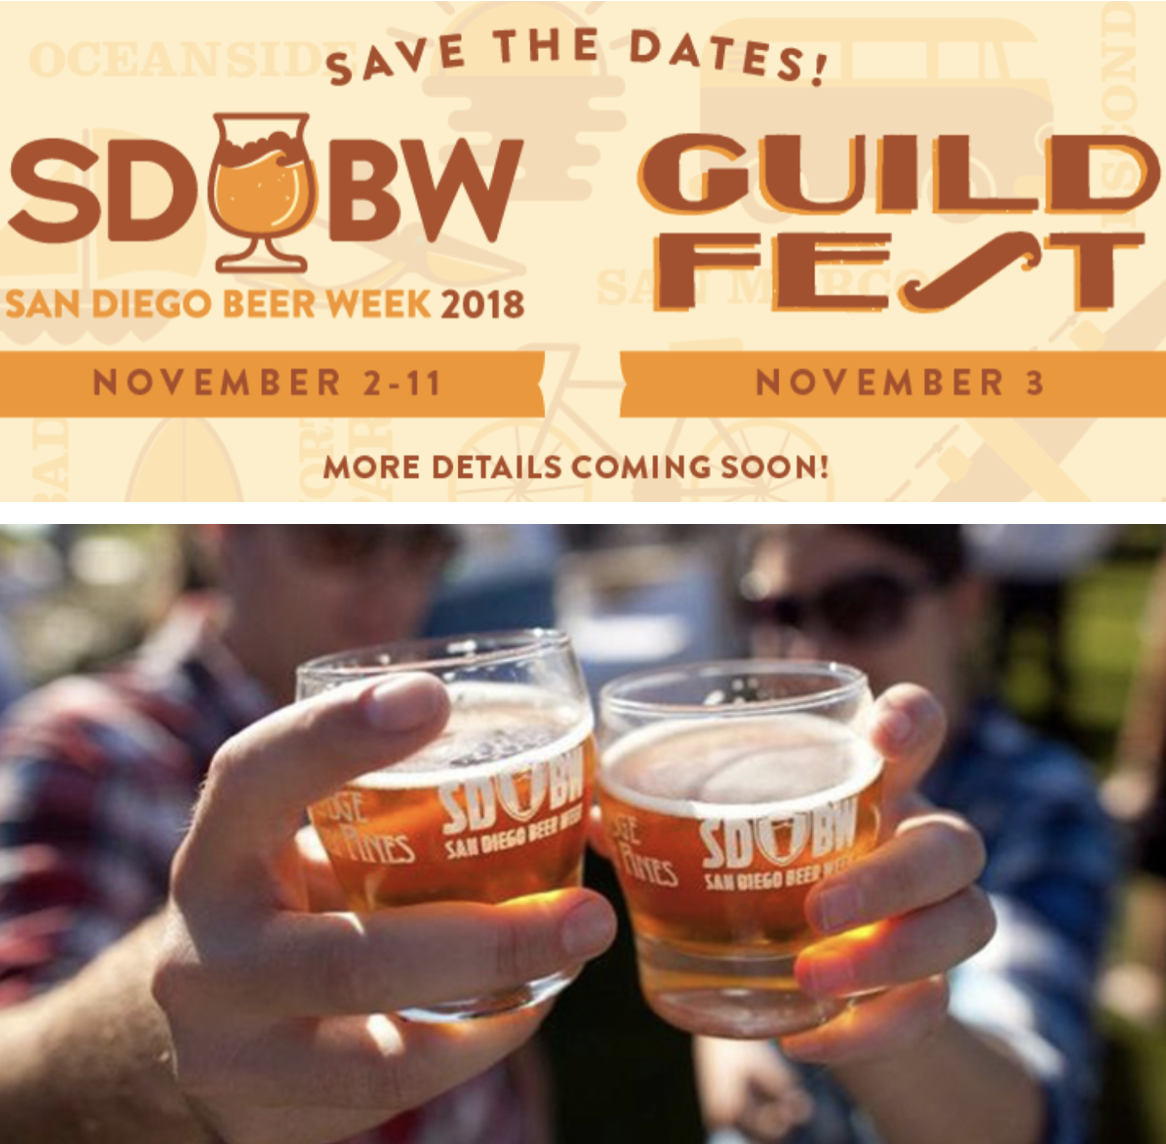 Don't miss San Diego Beer Week 2018 - November 2-11!